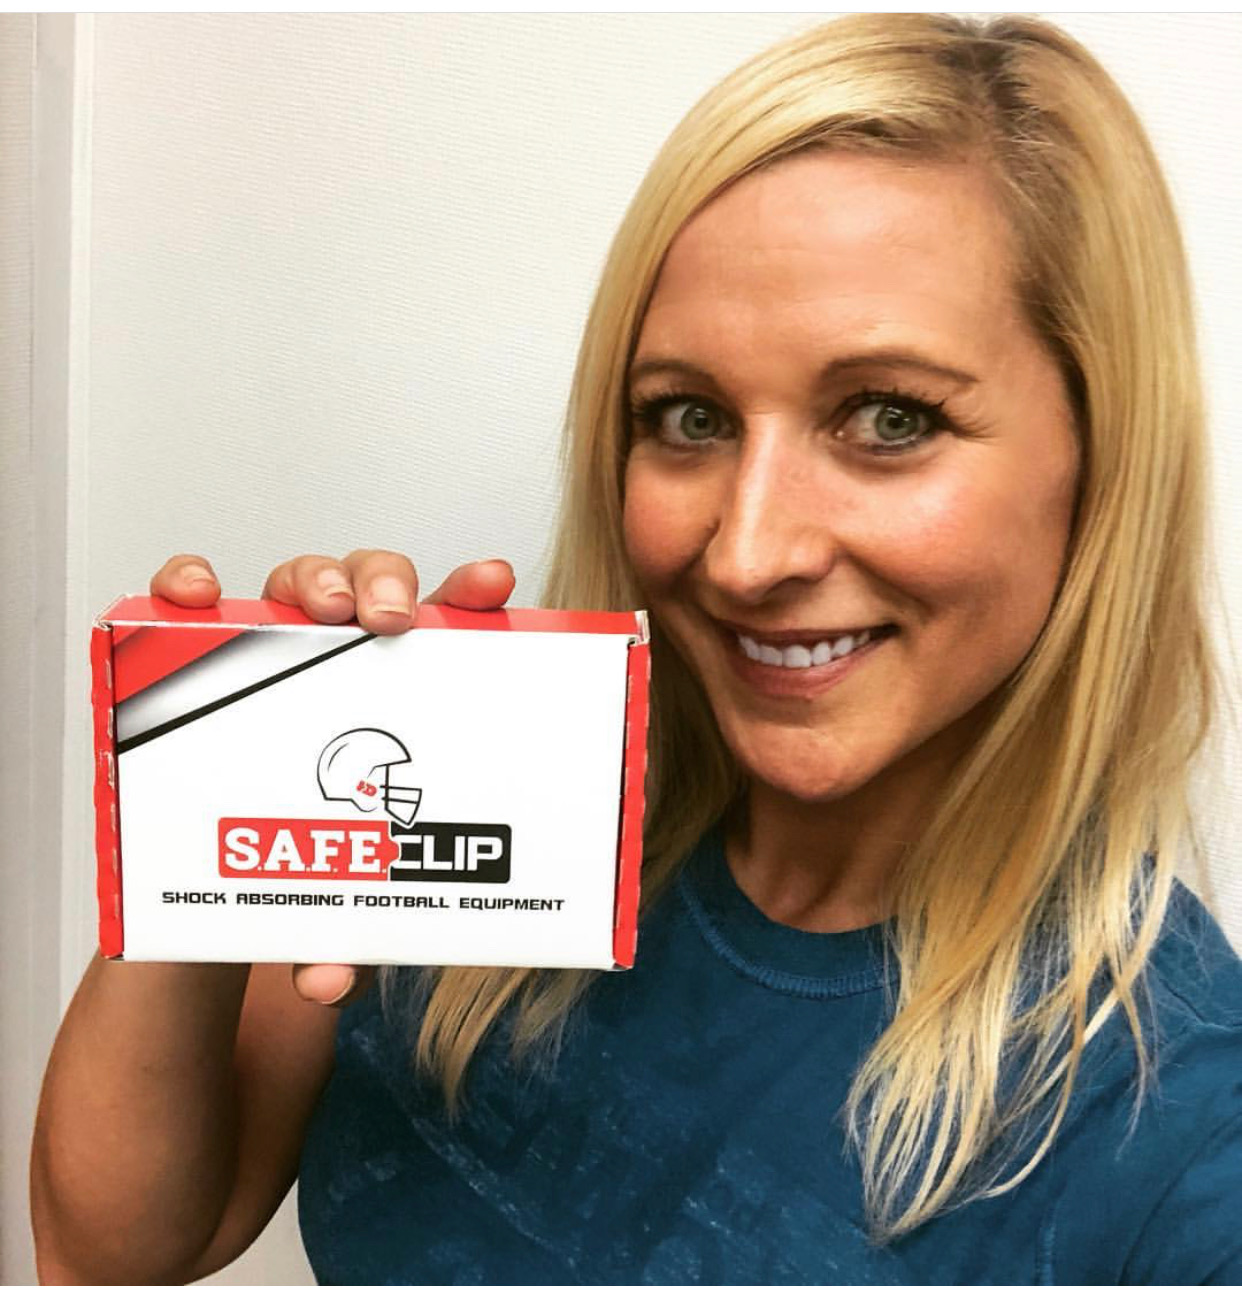 SAFEClip is endorsed by Moms of players at all levels